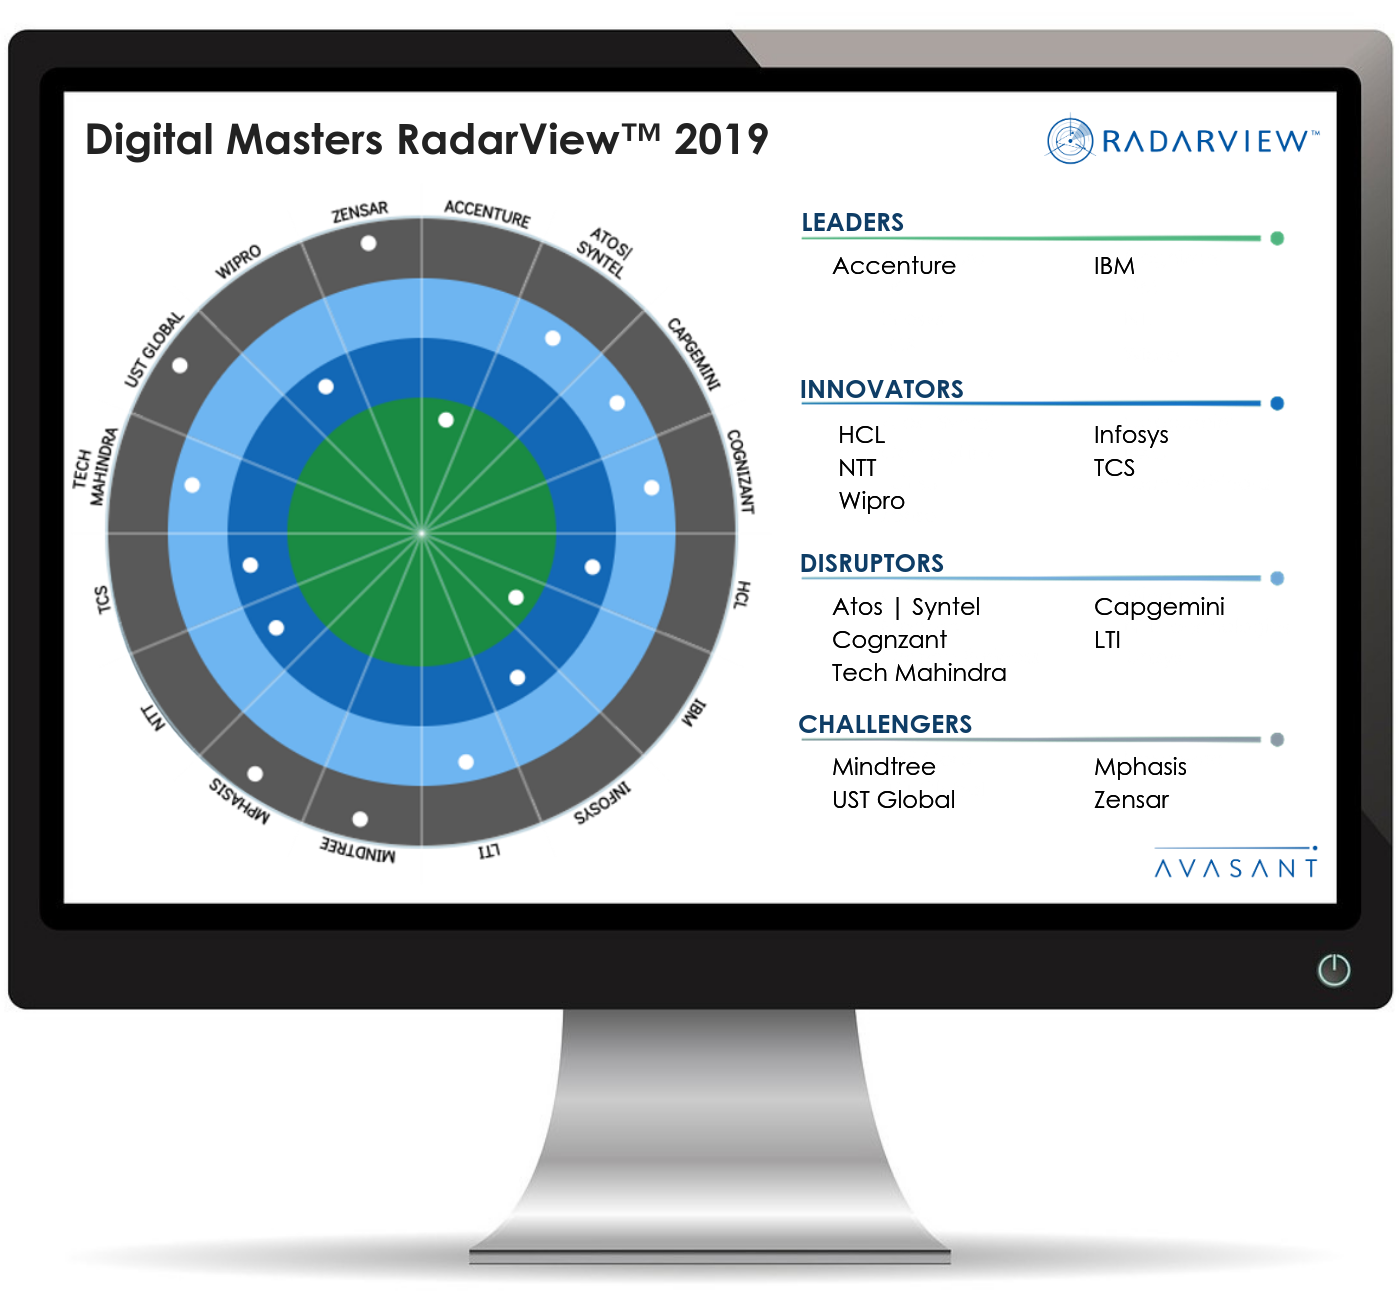 Digital Masters - Digital Masters Cognizant RadarView™ Profile 2019